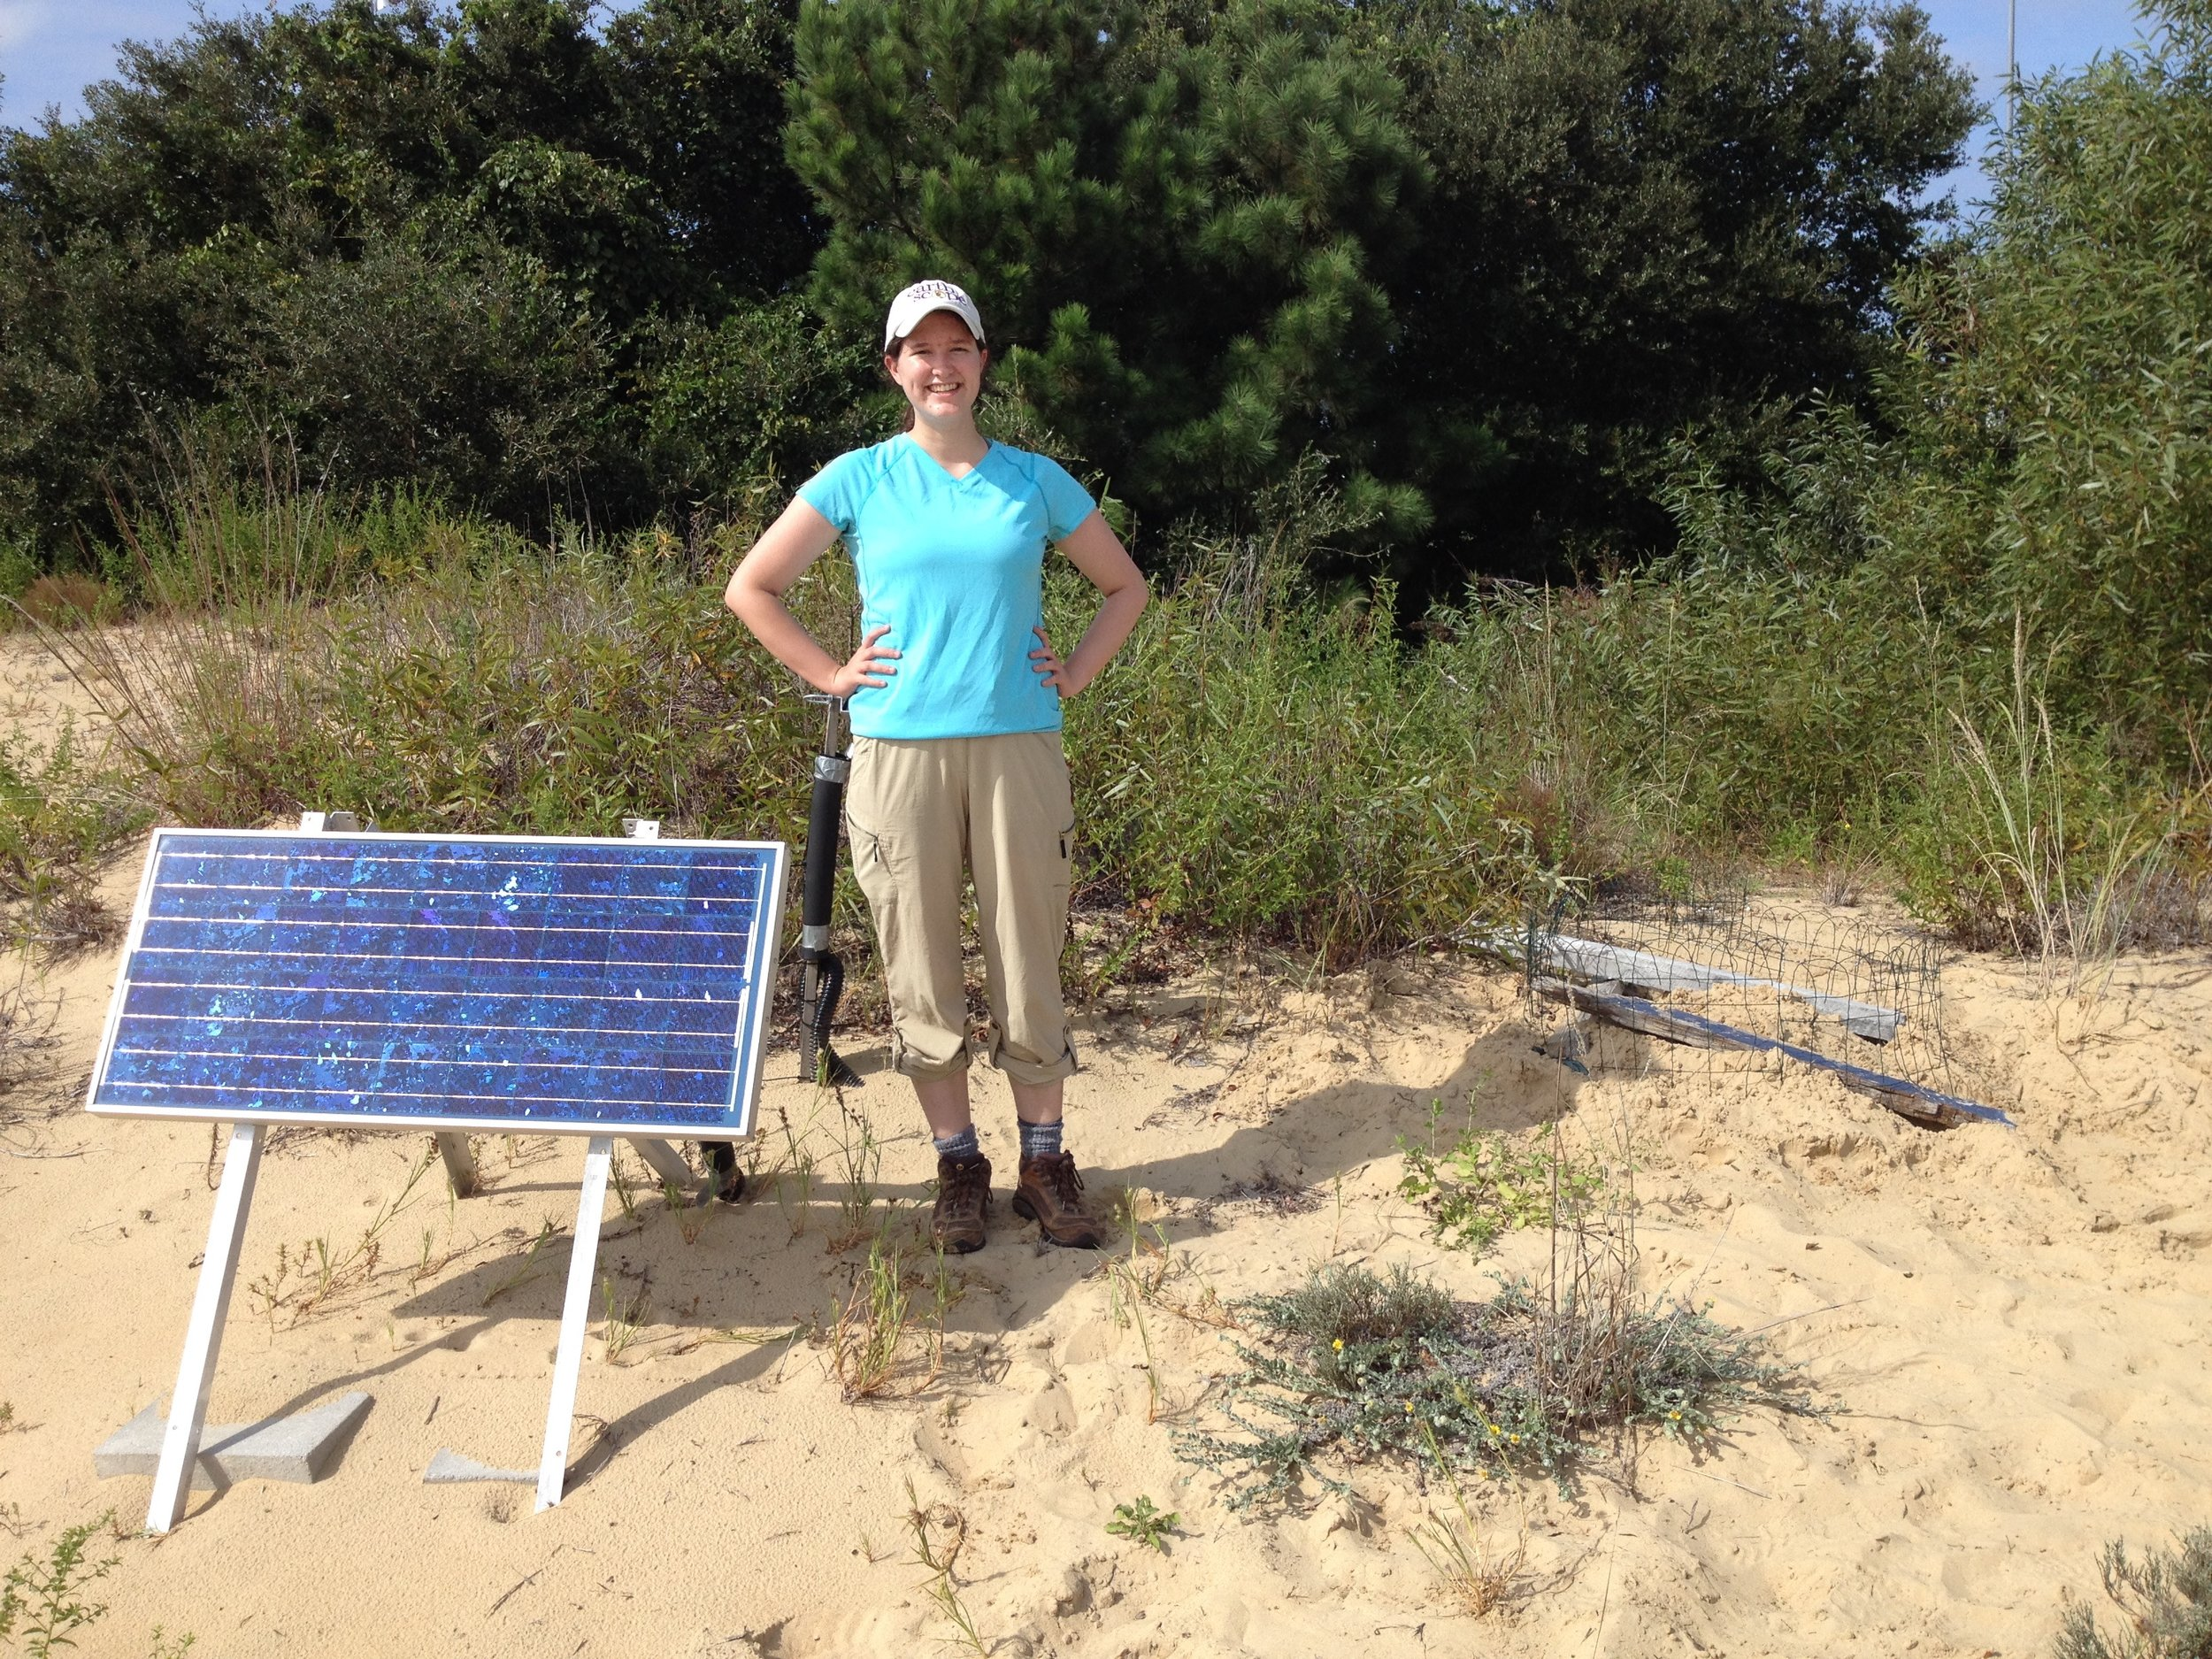 Servicing an ENAM station in the Outer Banks, North Carolina